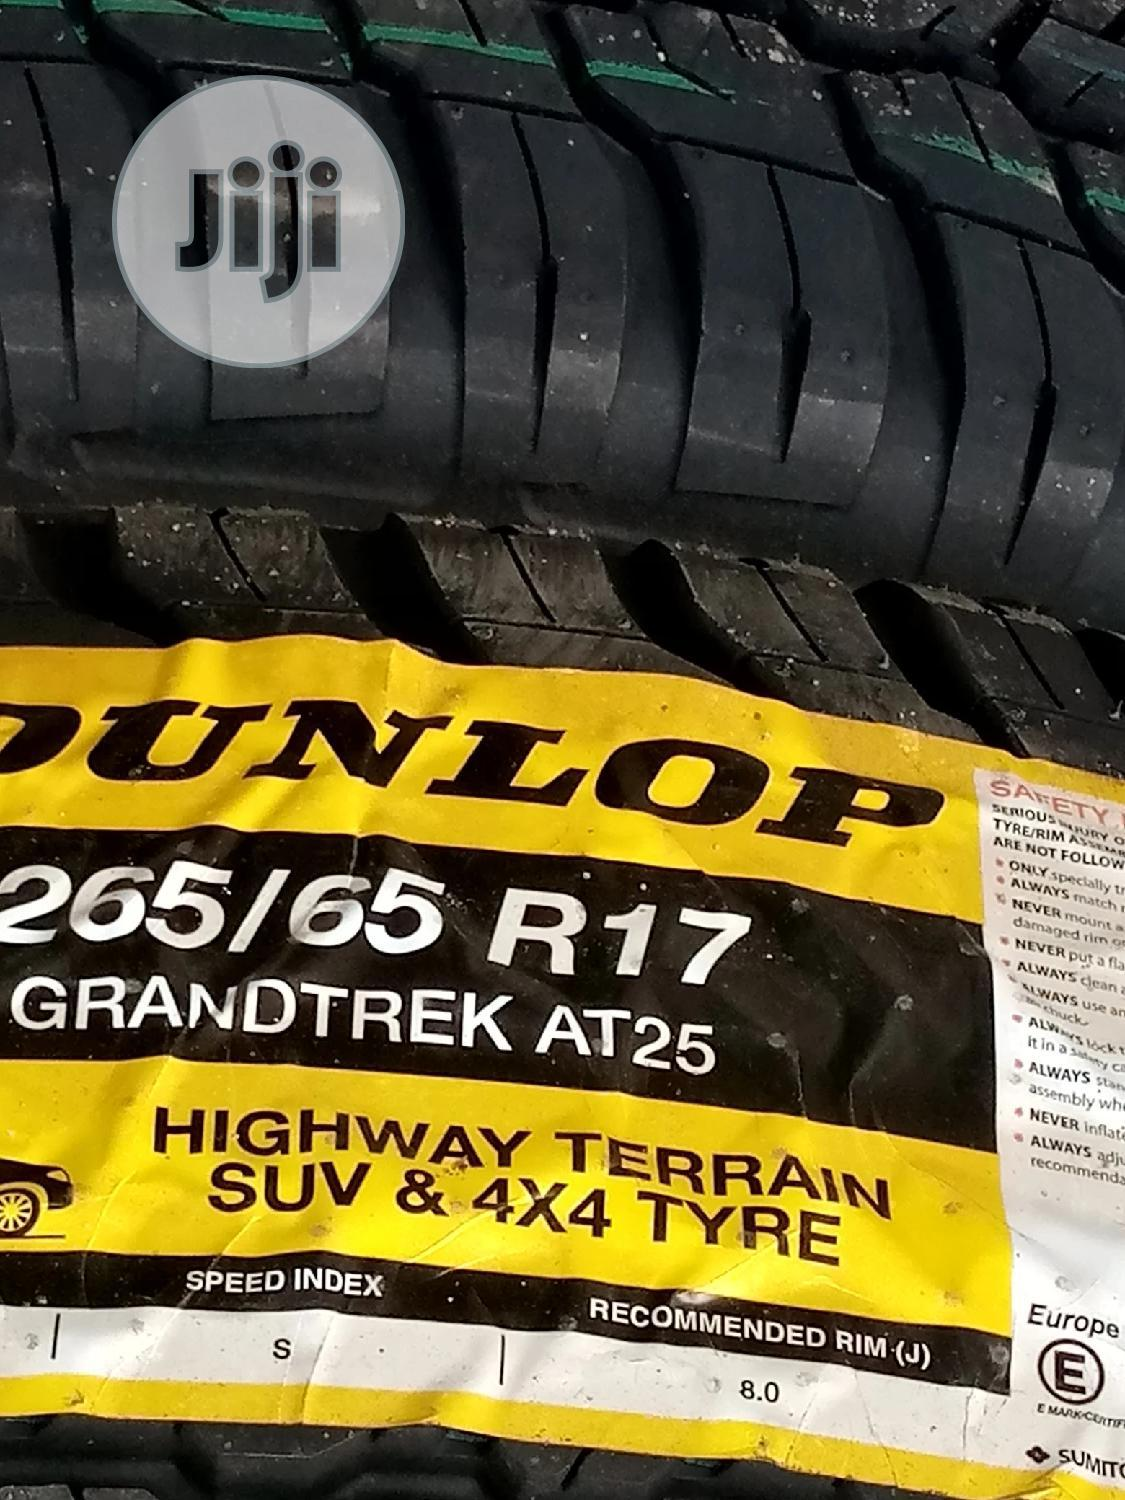 All Kinds of Dunlop Tyre for Jeep and Car Tyres